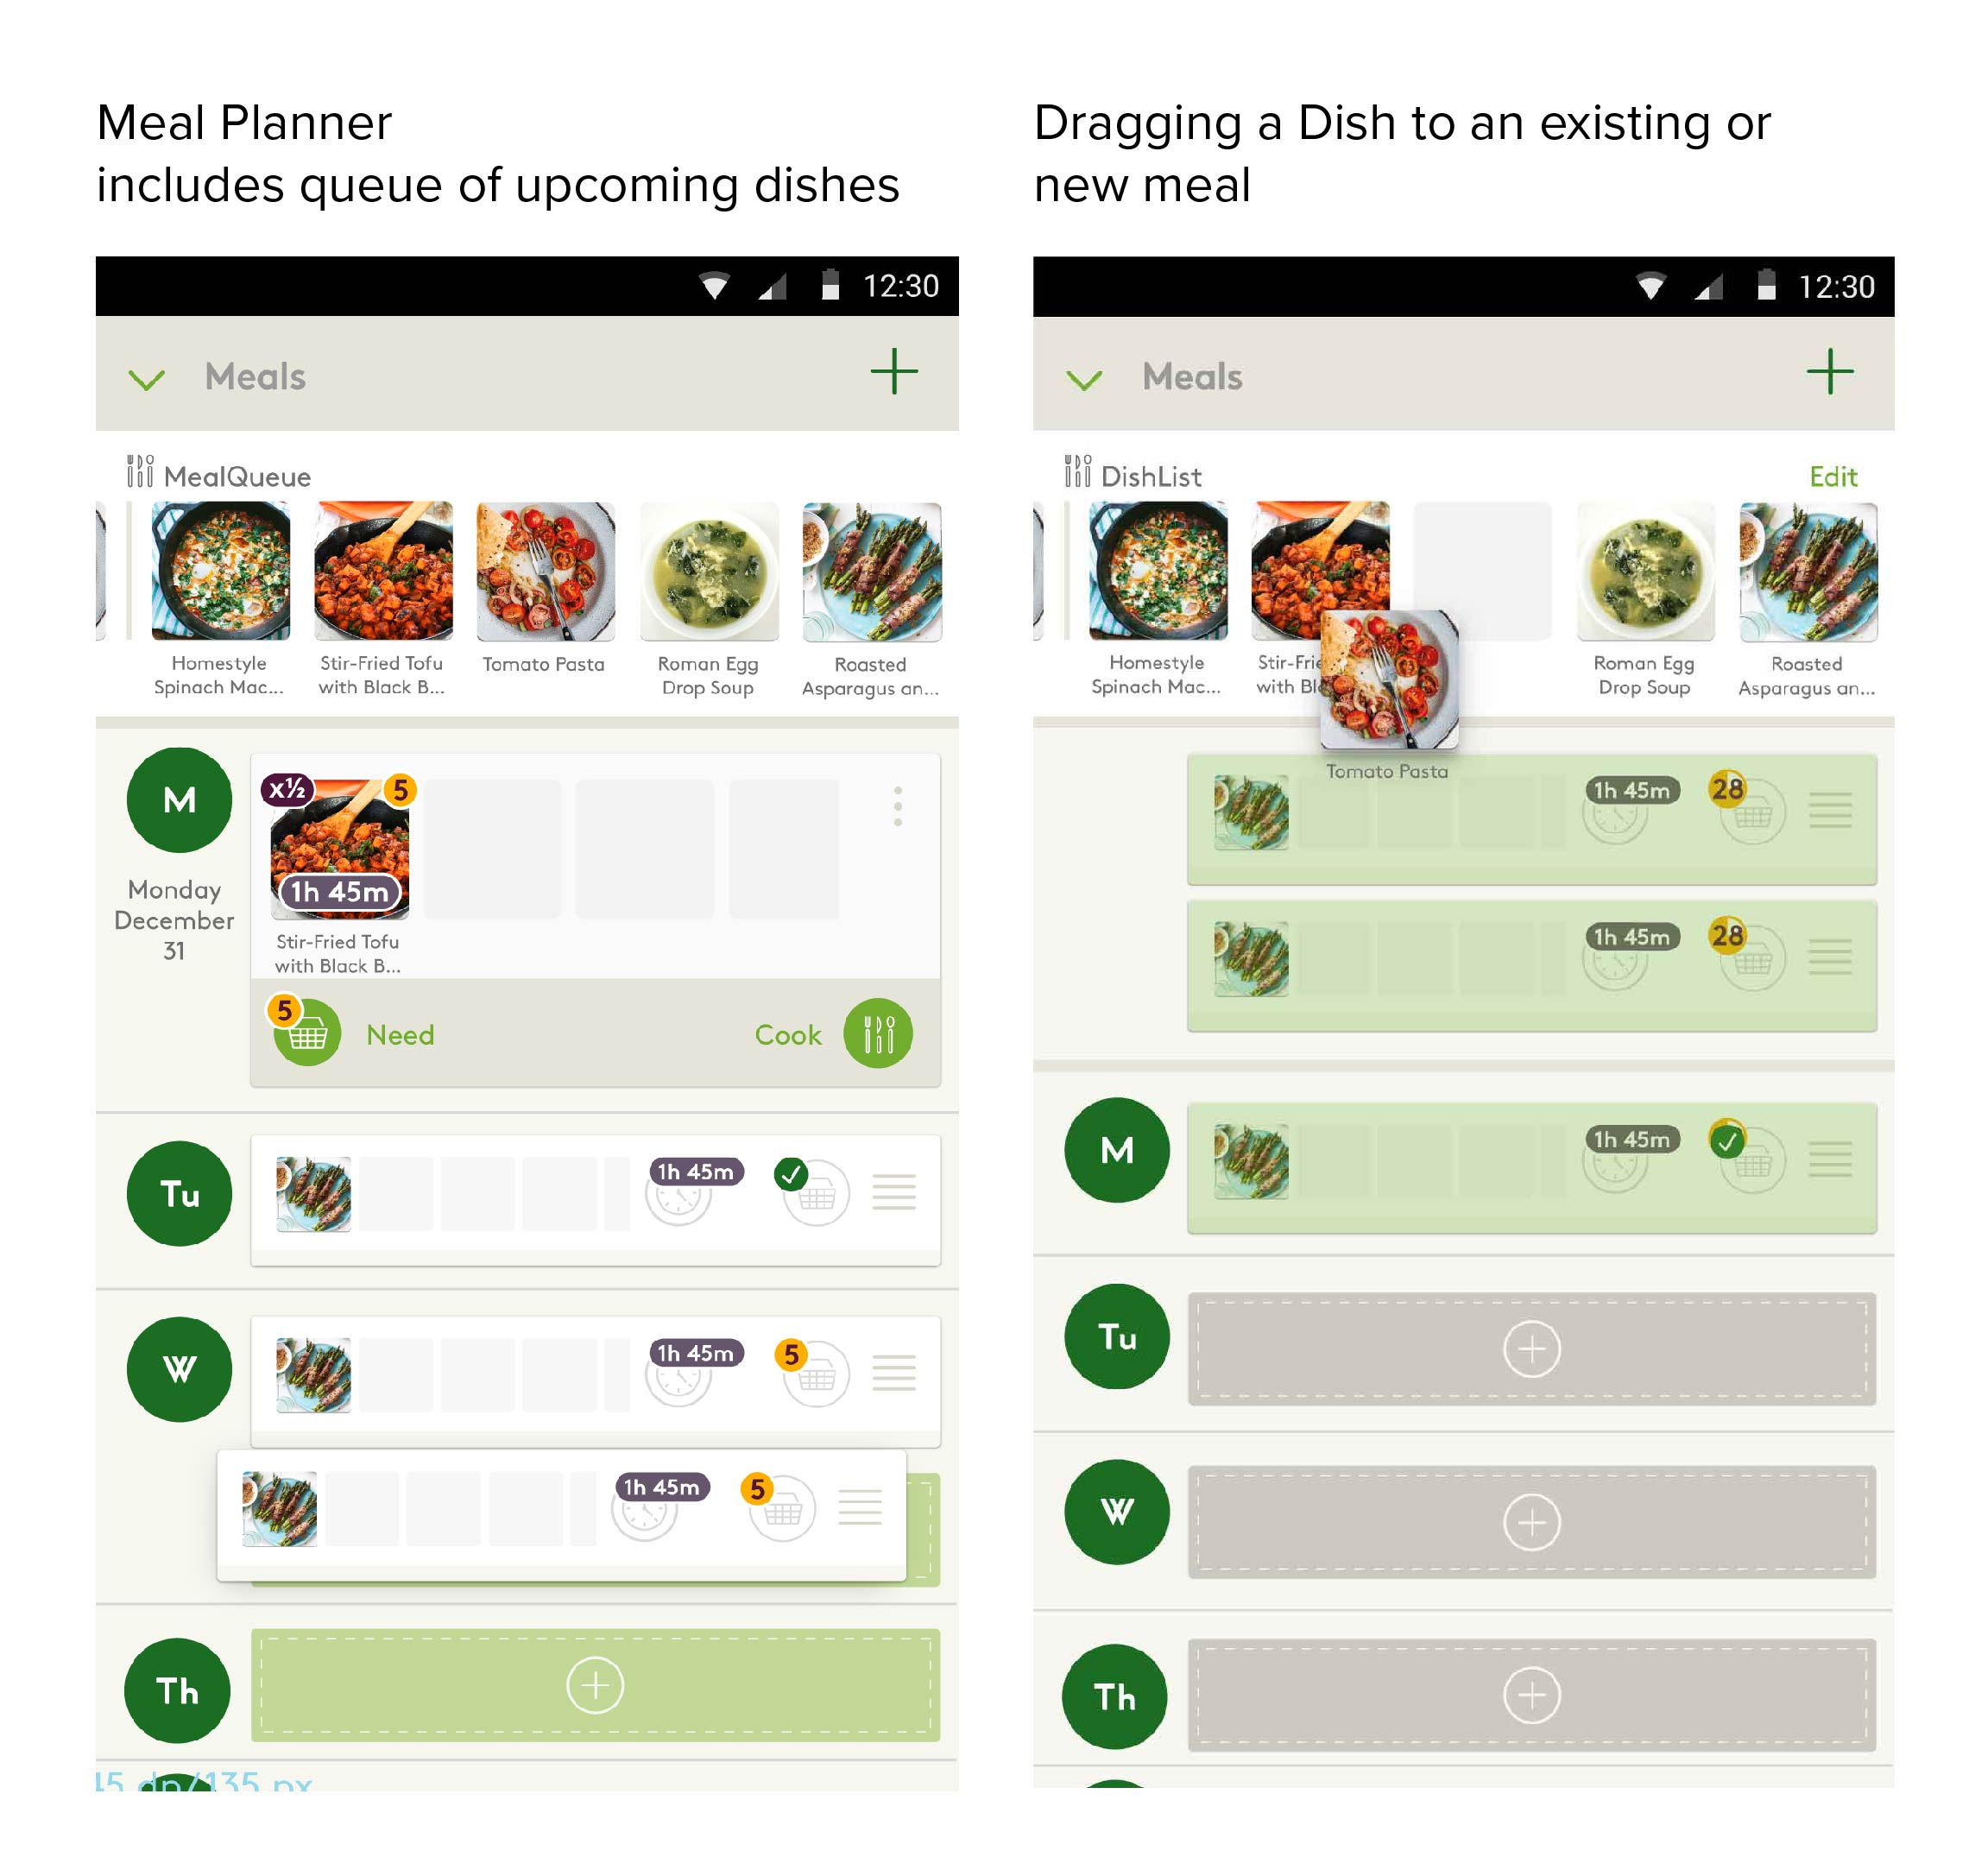 Initial Meal Planner